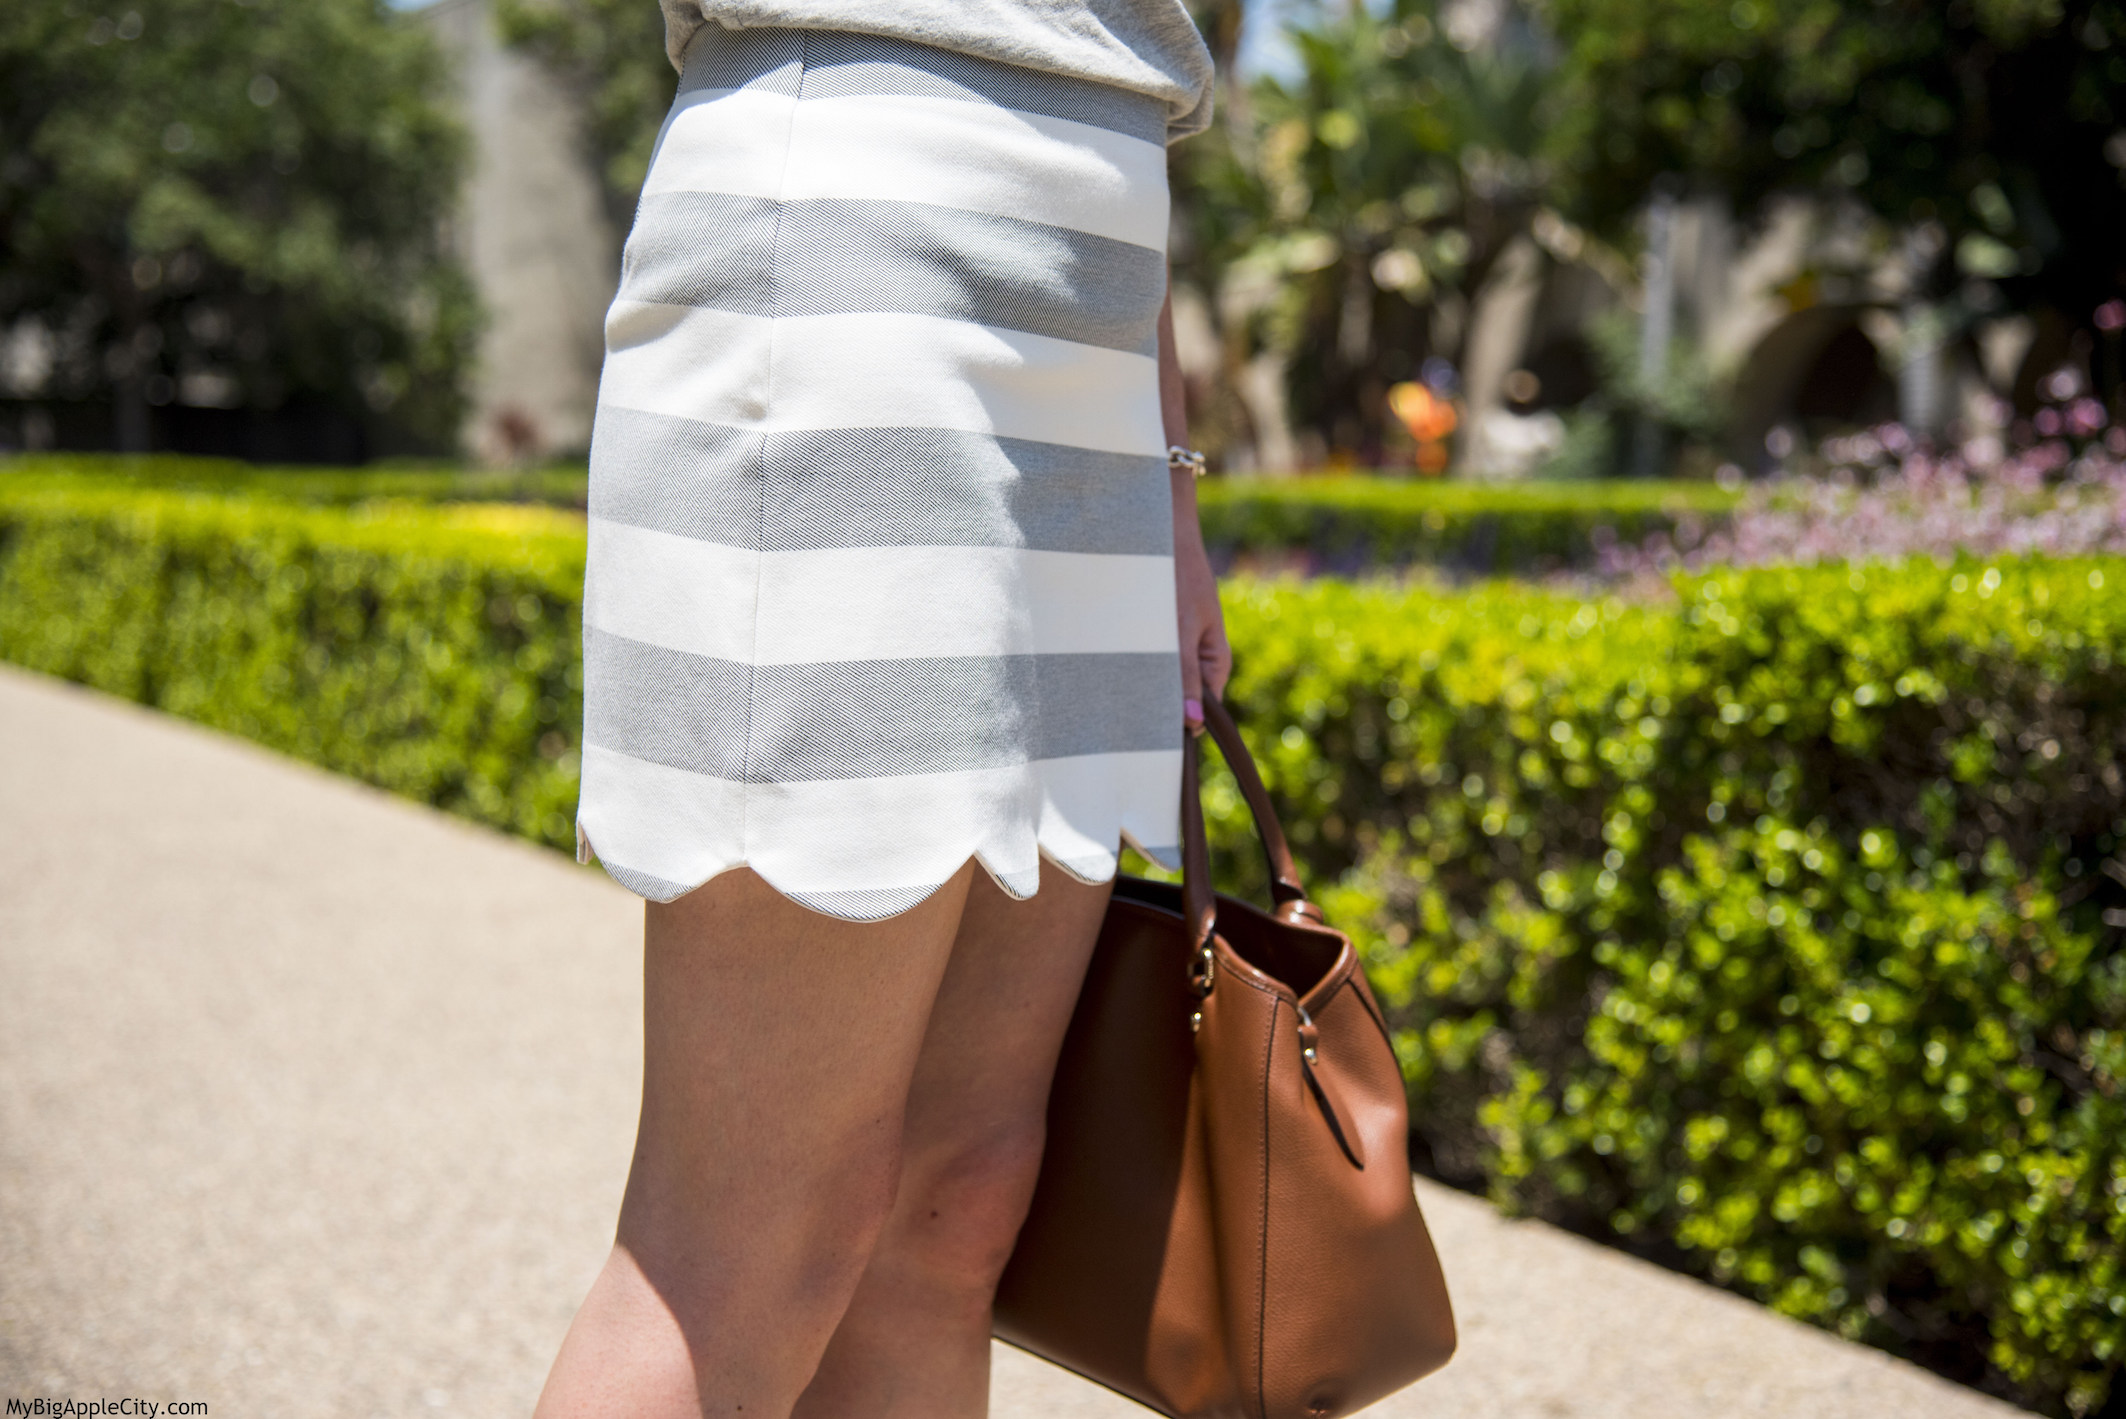 Topshop-stripe-skirt-OOTD-Fashion-blogger-nyc-travelstyle-mybigapplecity